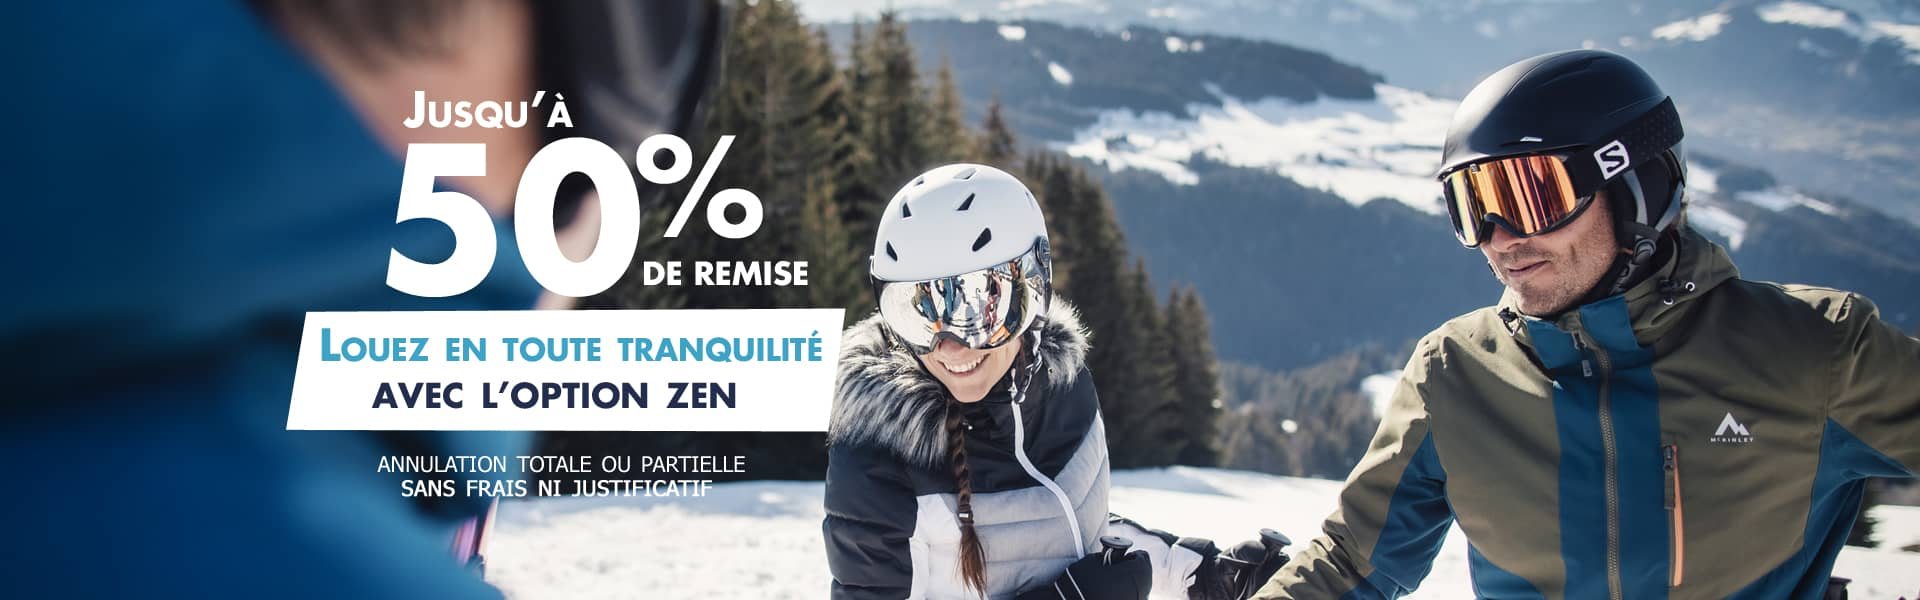 Location ski Intersport Pra Loup 1600